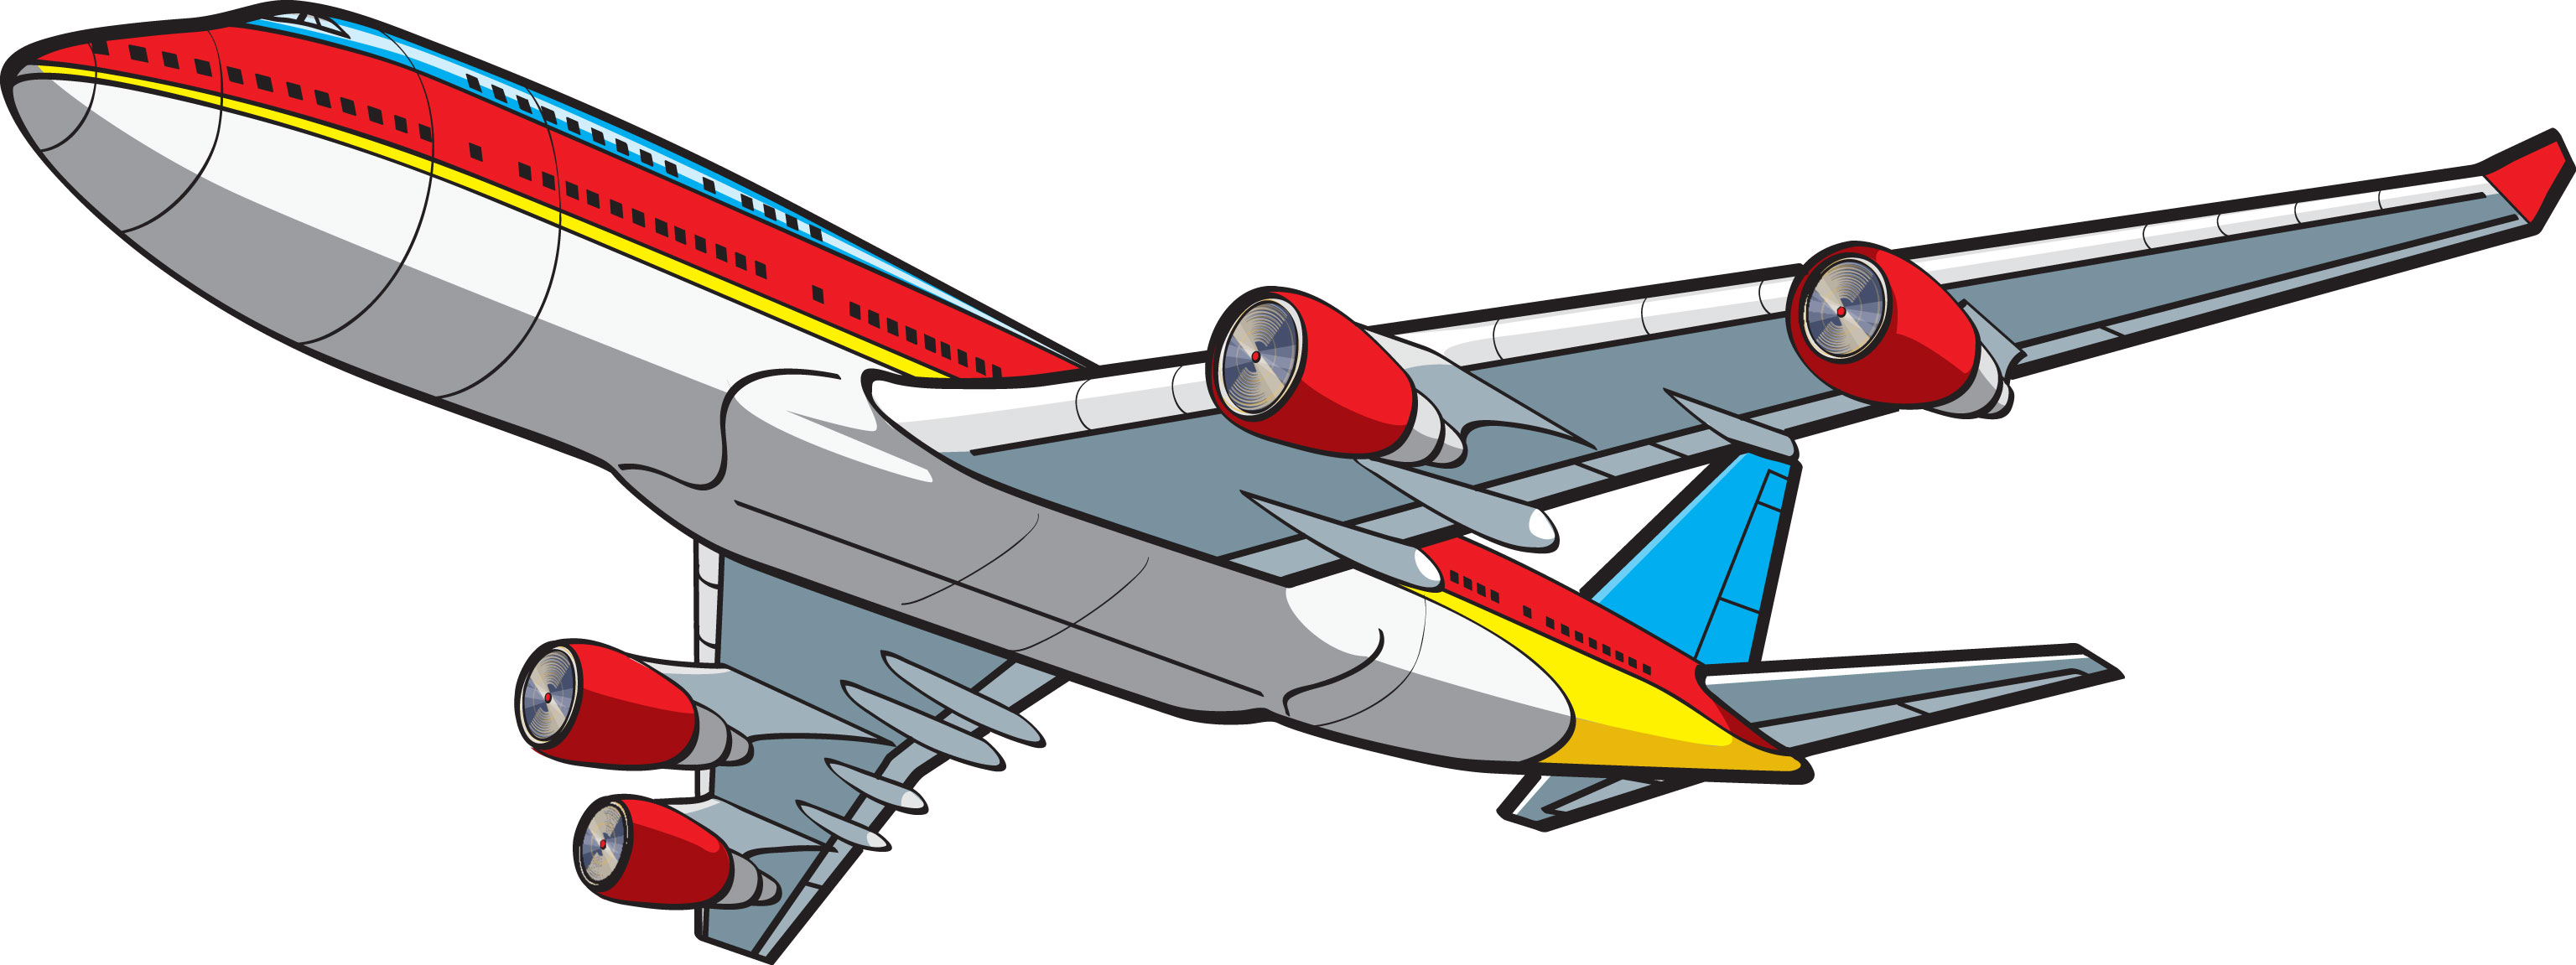 3072x1151 Travel Clipart Airplane Flying